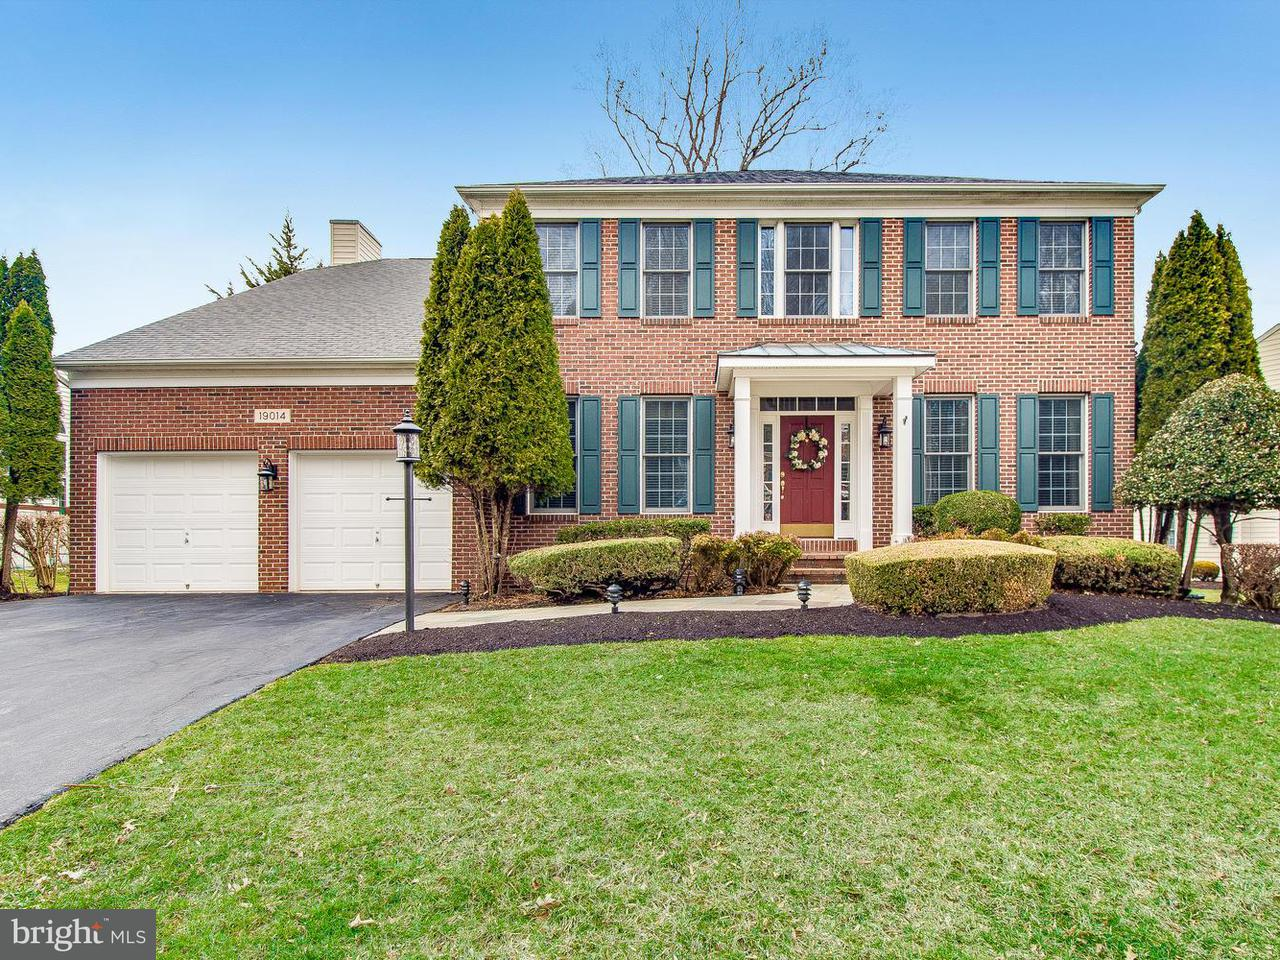 Single Family Home for Sale at 19014 Dellabrooke Farm Way 19014 Dellabrooke Farm Way Brookeville, Maryland 20833 United States